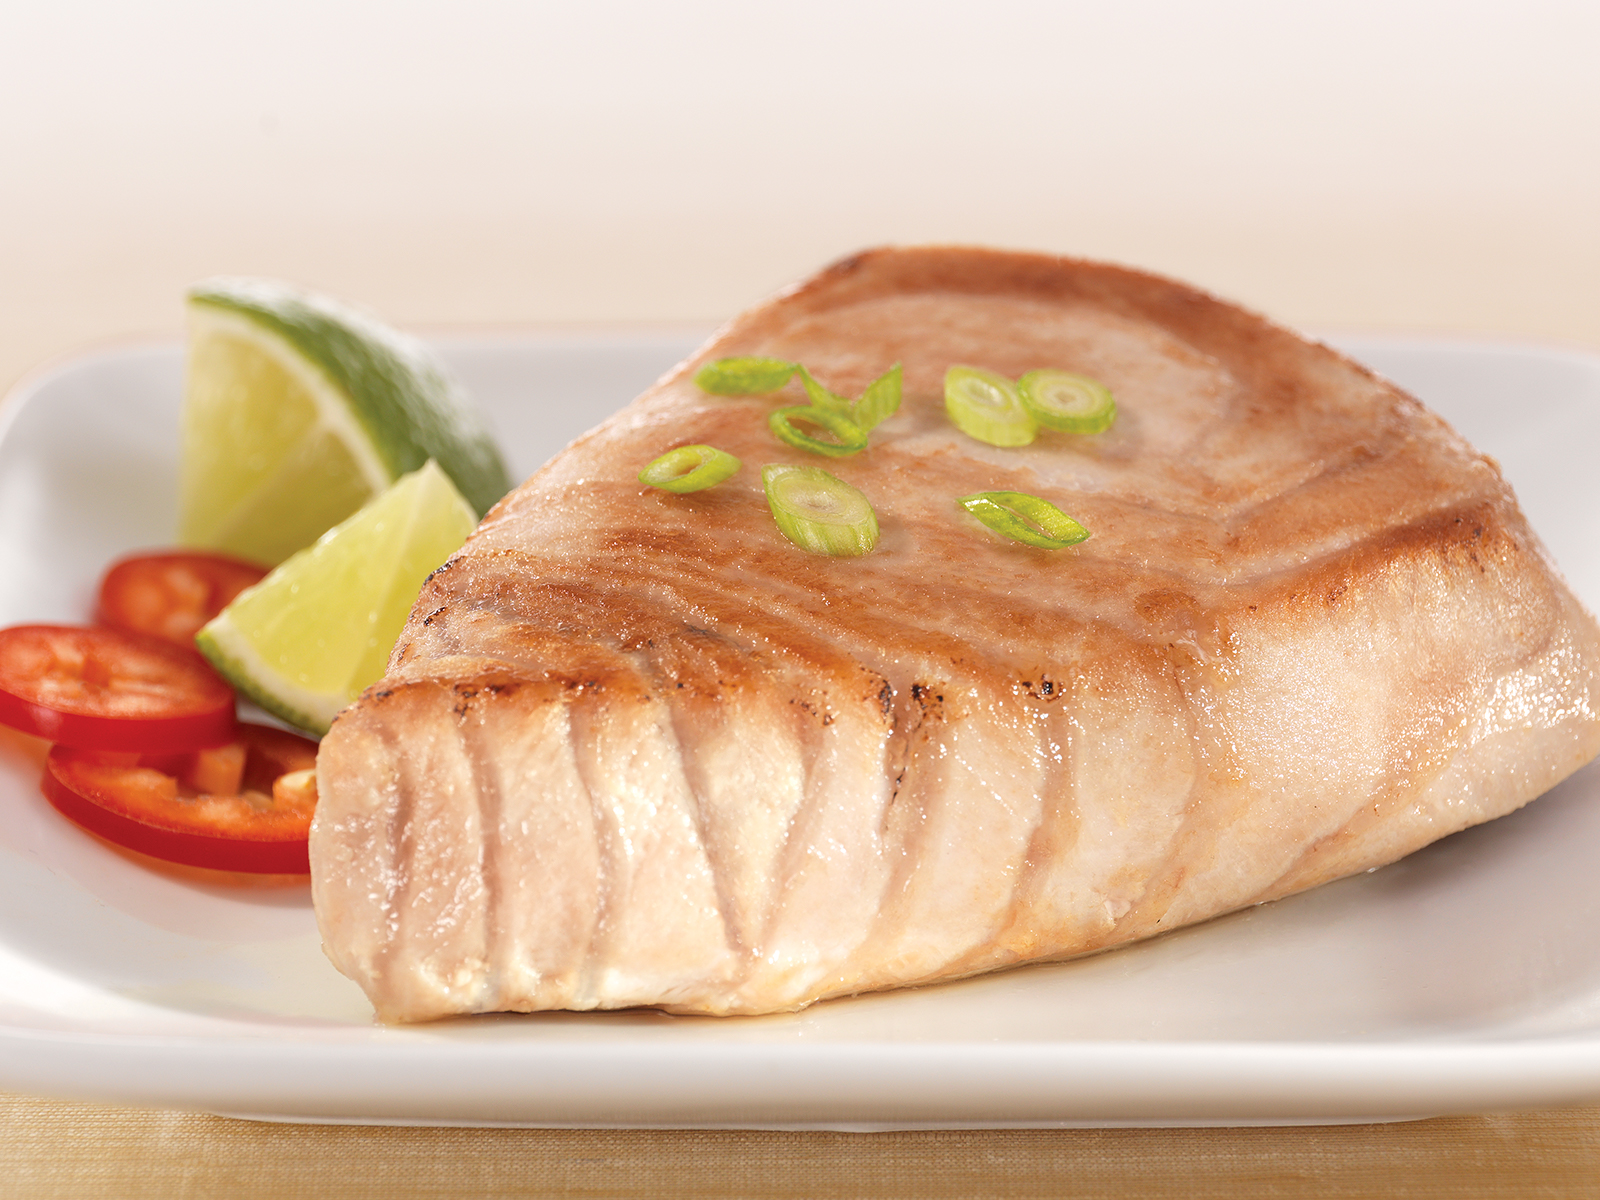 Red Tuna Steak 6 oz (1/10 lb) 411694